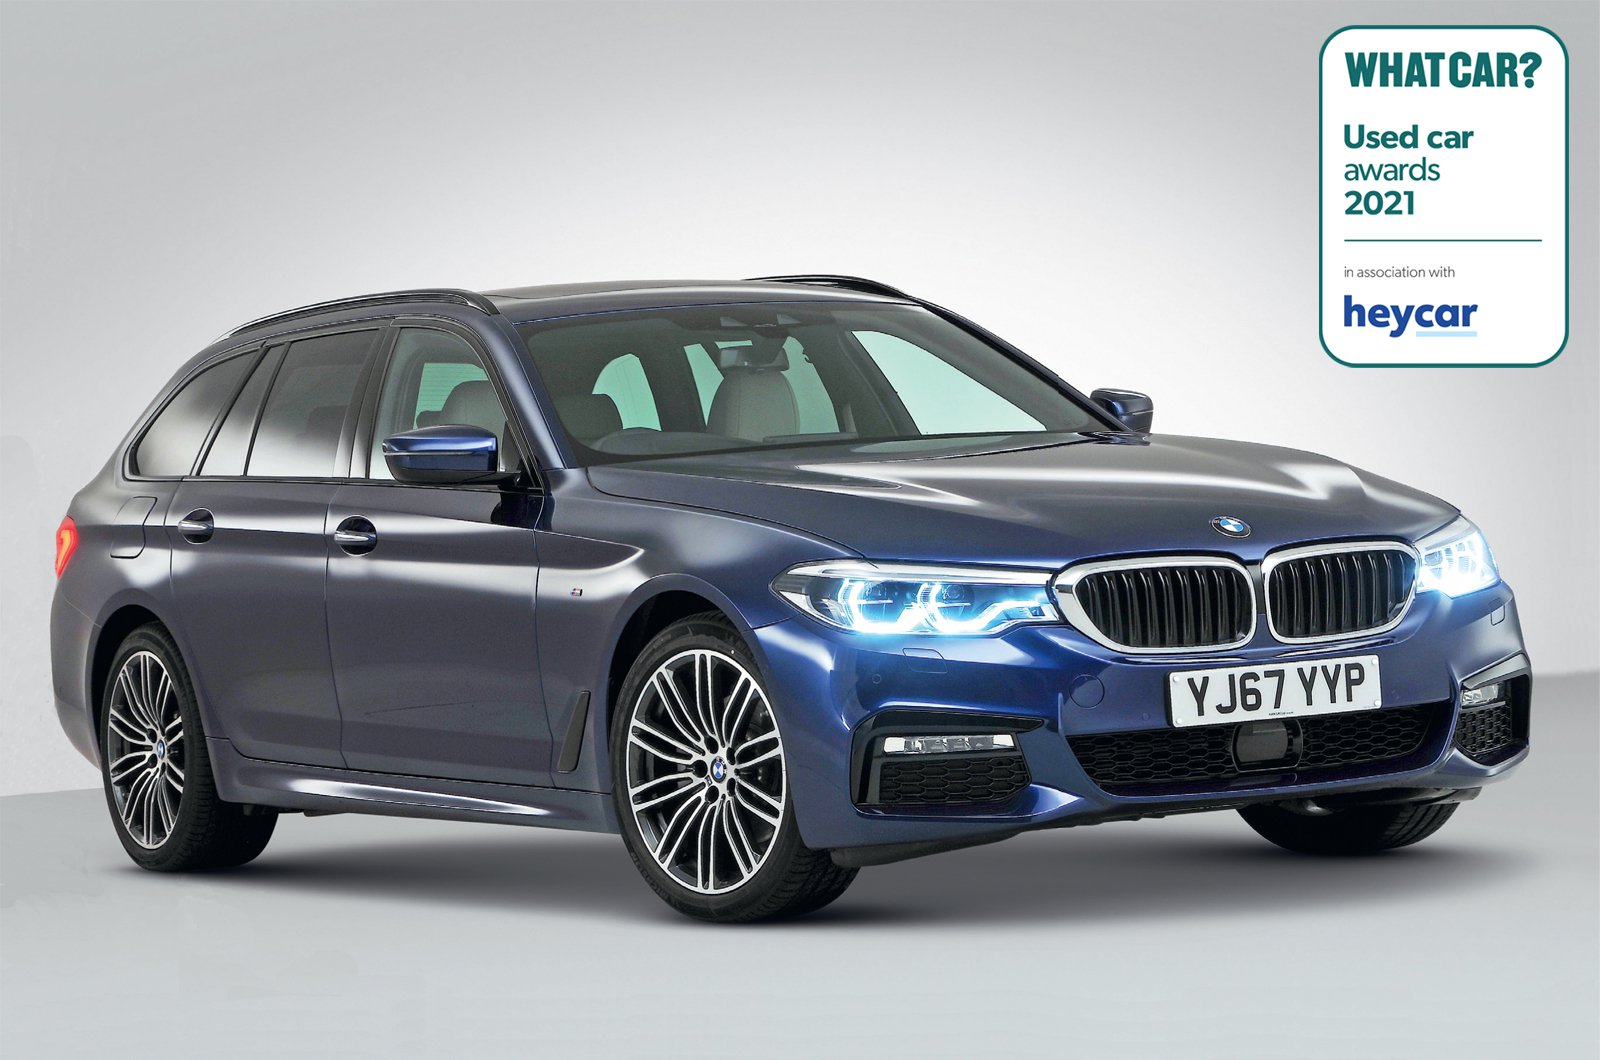 Used Car Awards 2021 - BMW 5 Series Touring